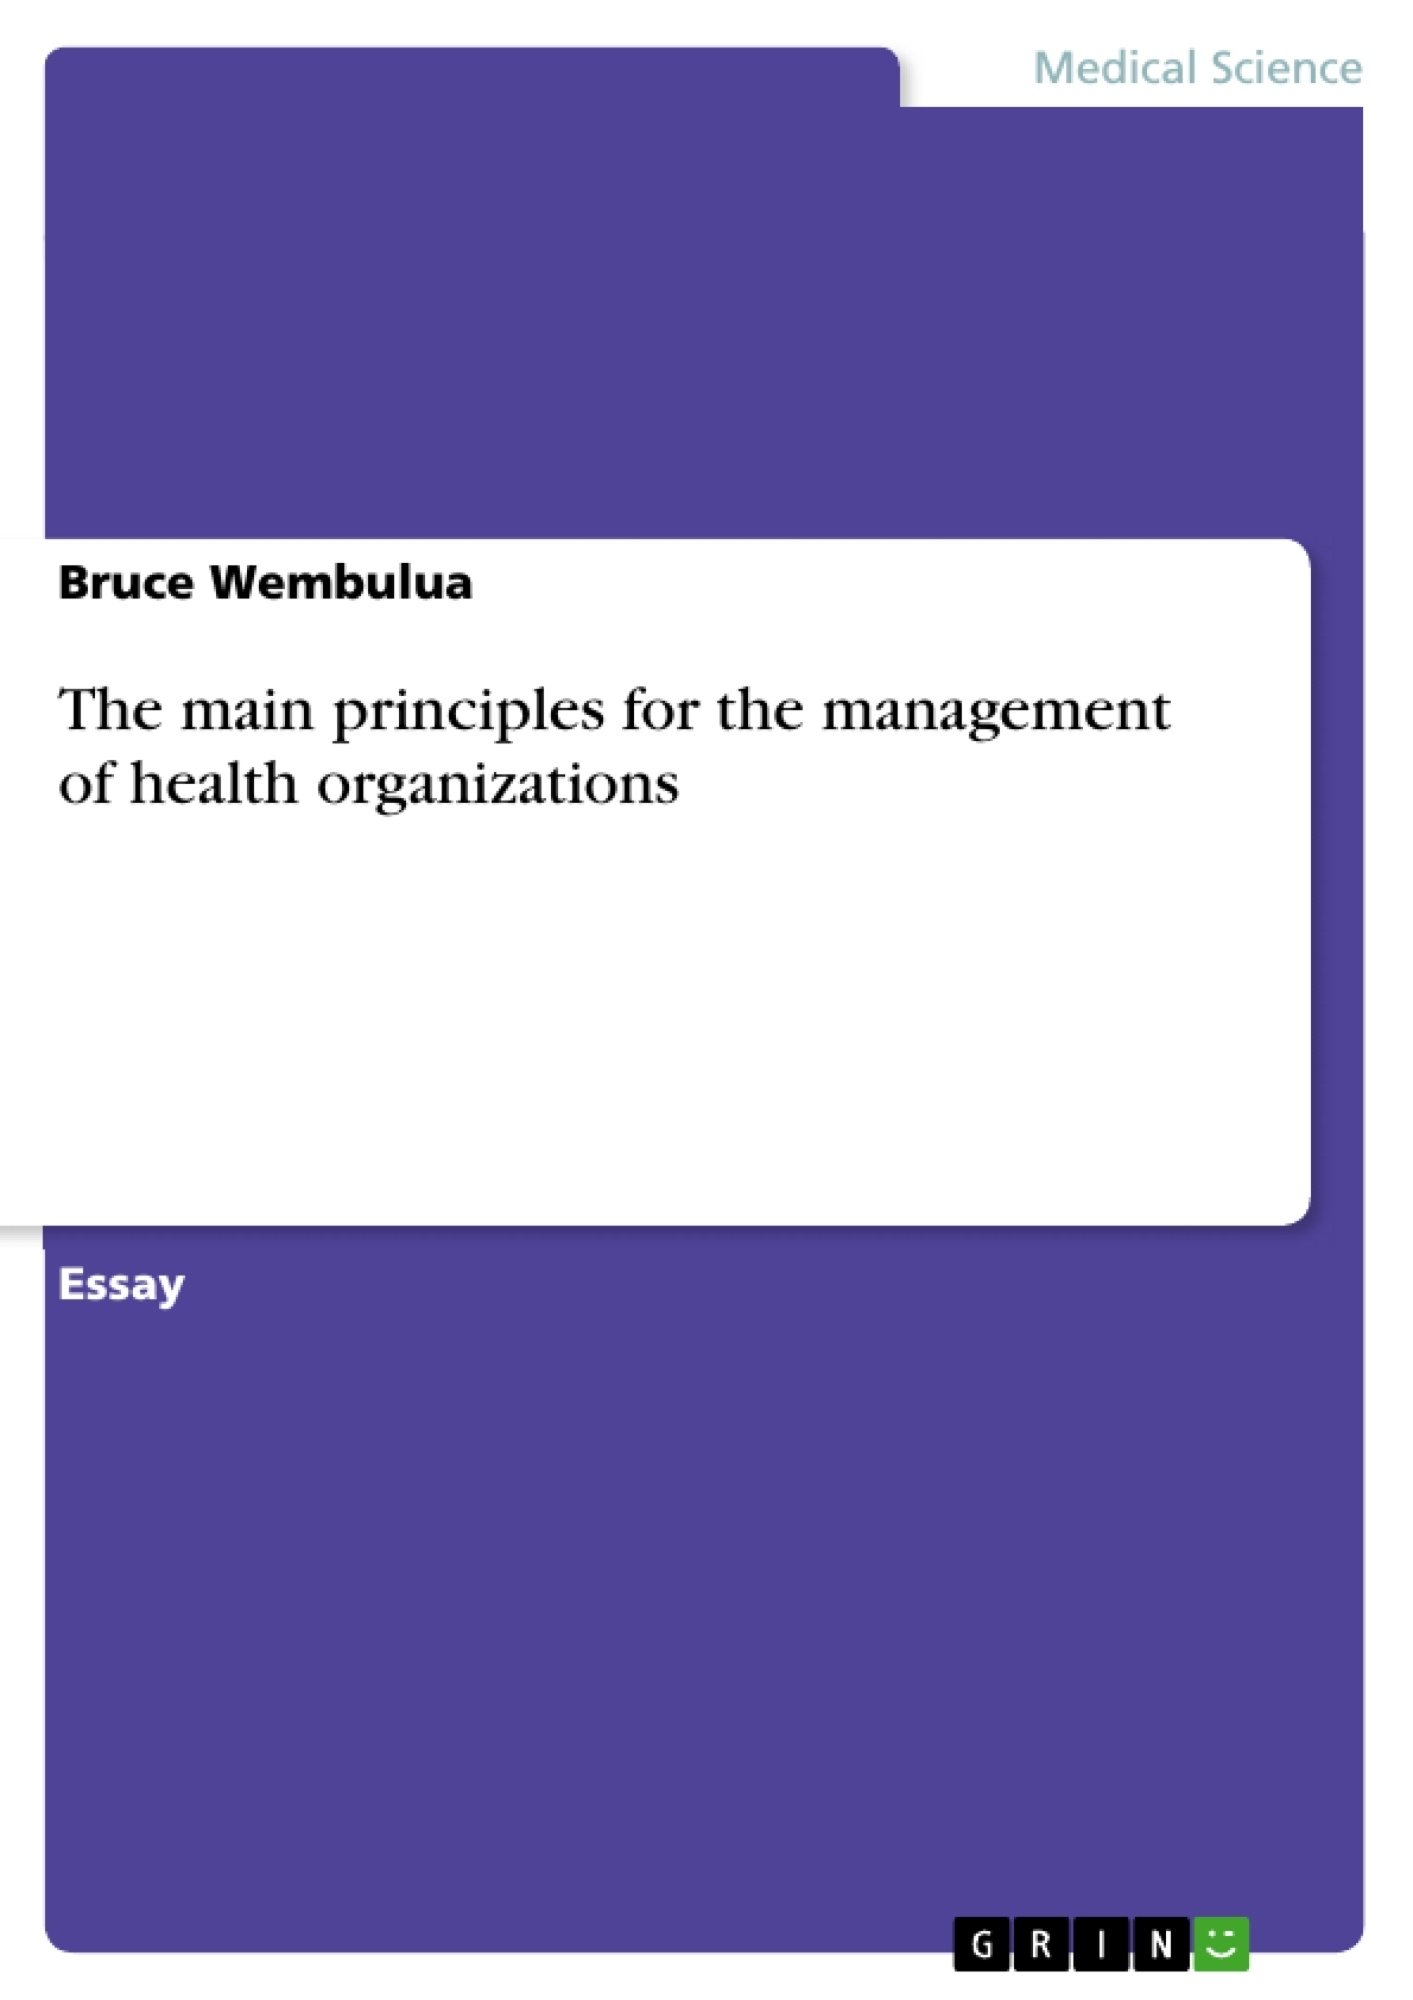 Title: The main principles for the management of health organizations